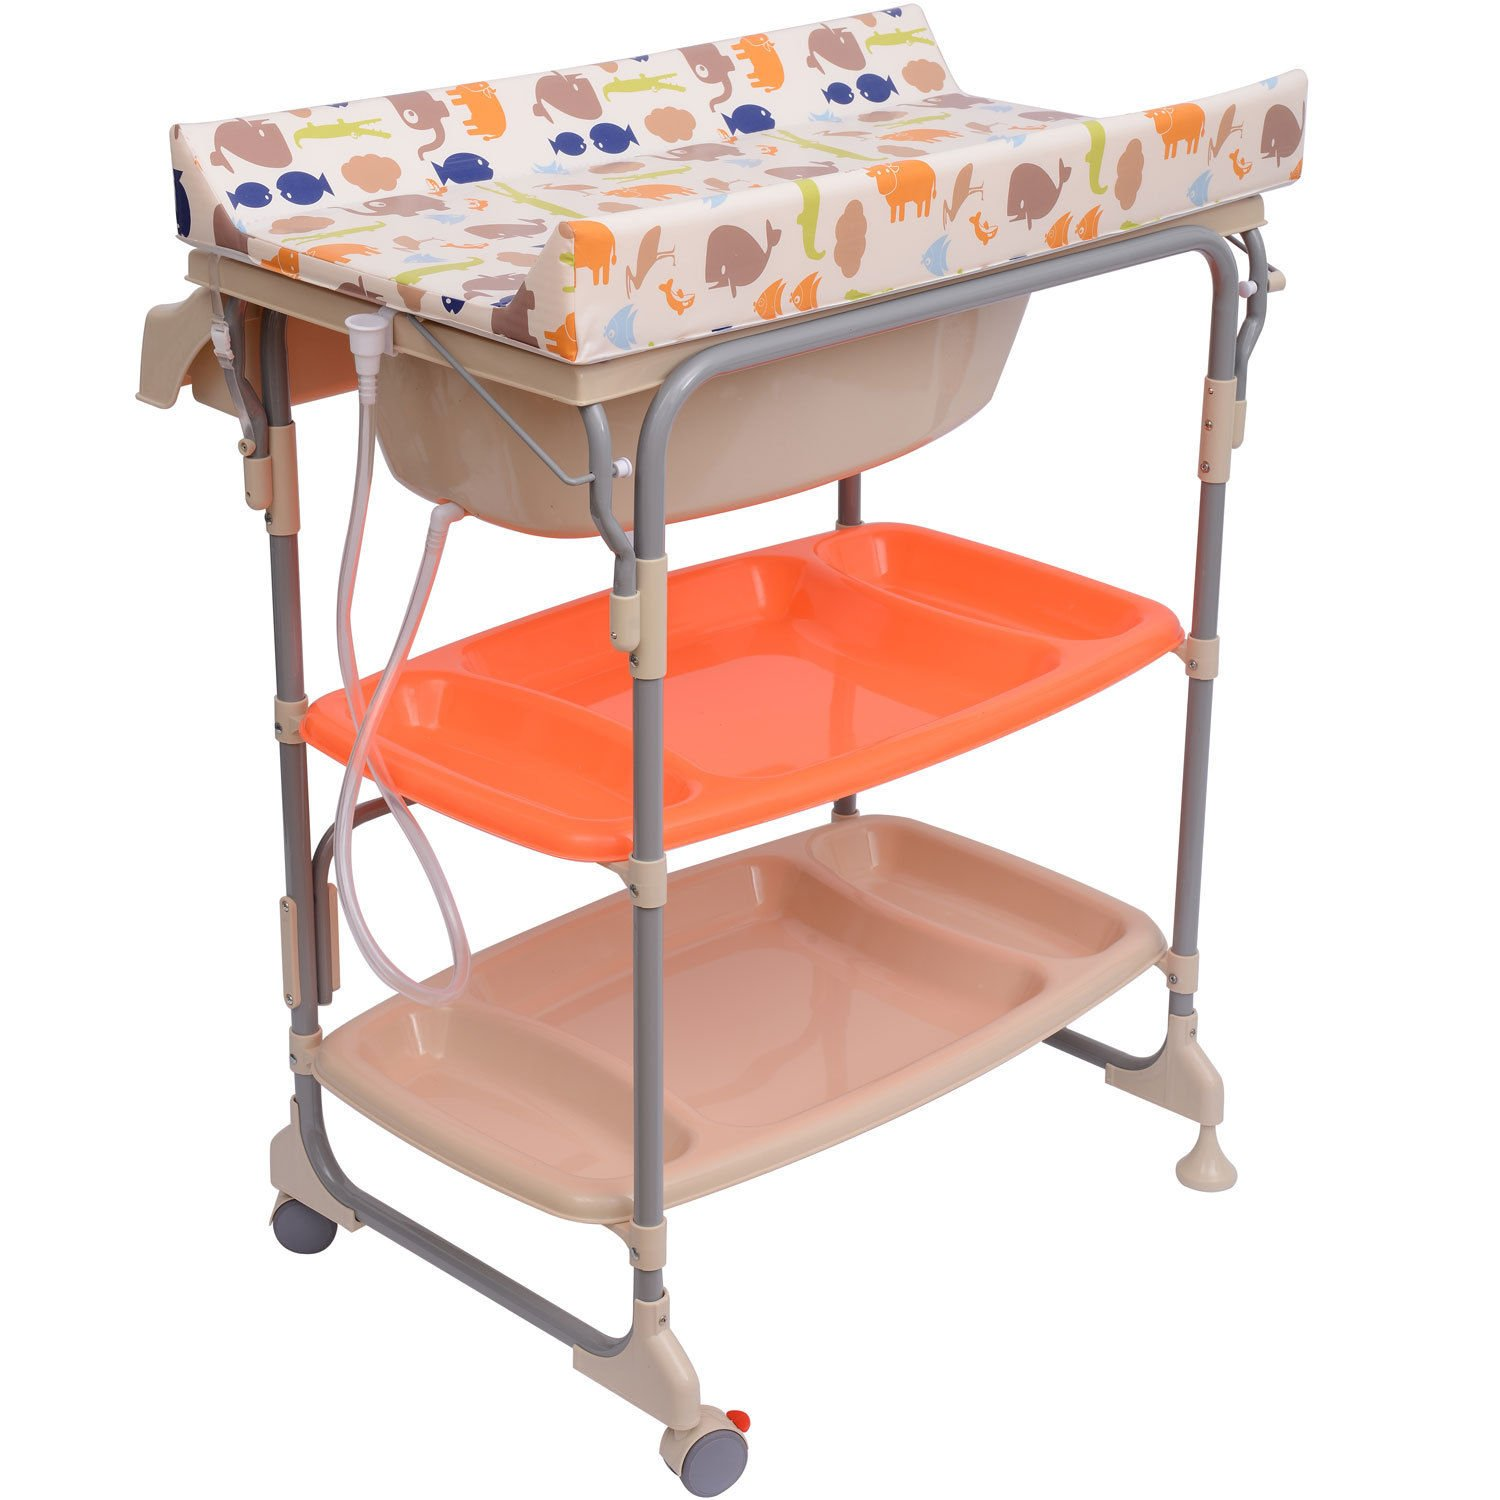 Homcom Baby Changing Table Unit Changing Station Storage Trays and Bath with Tub Brand New Sold by MHSTAR UK66-00010331